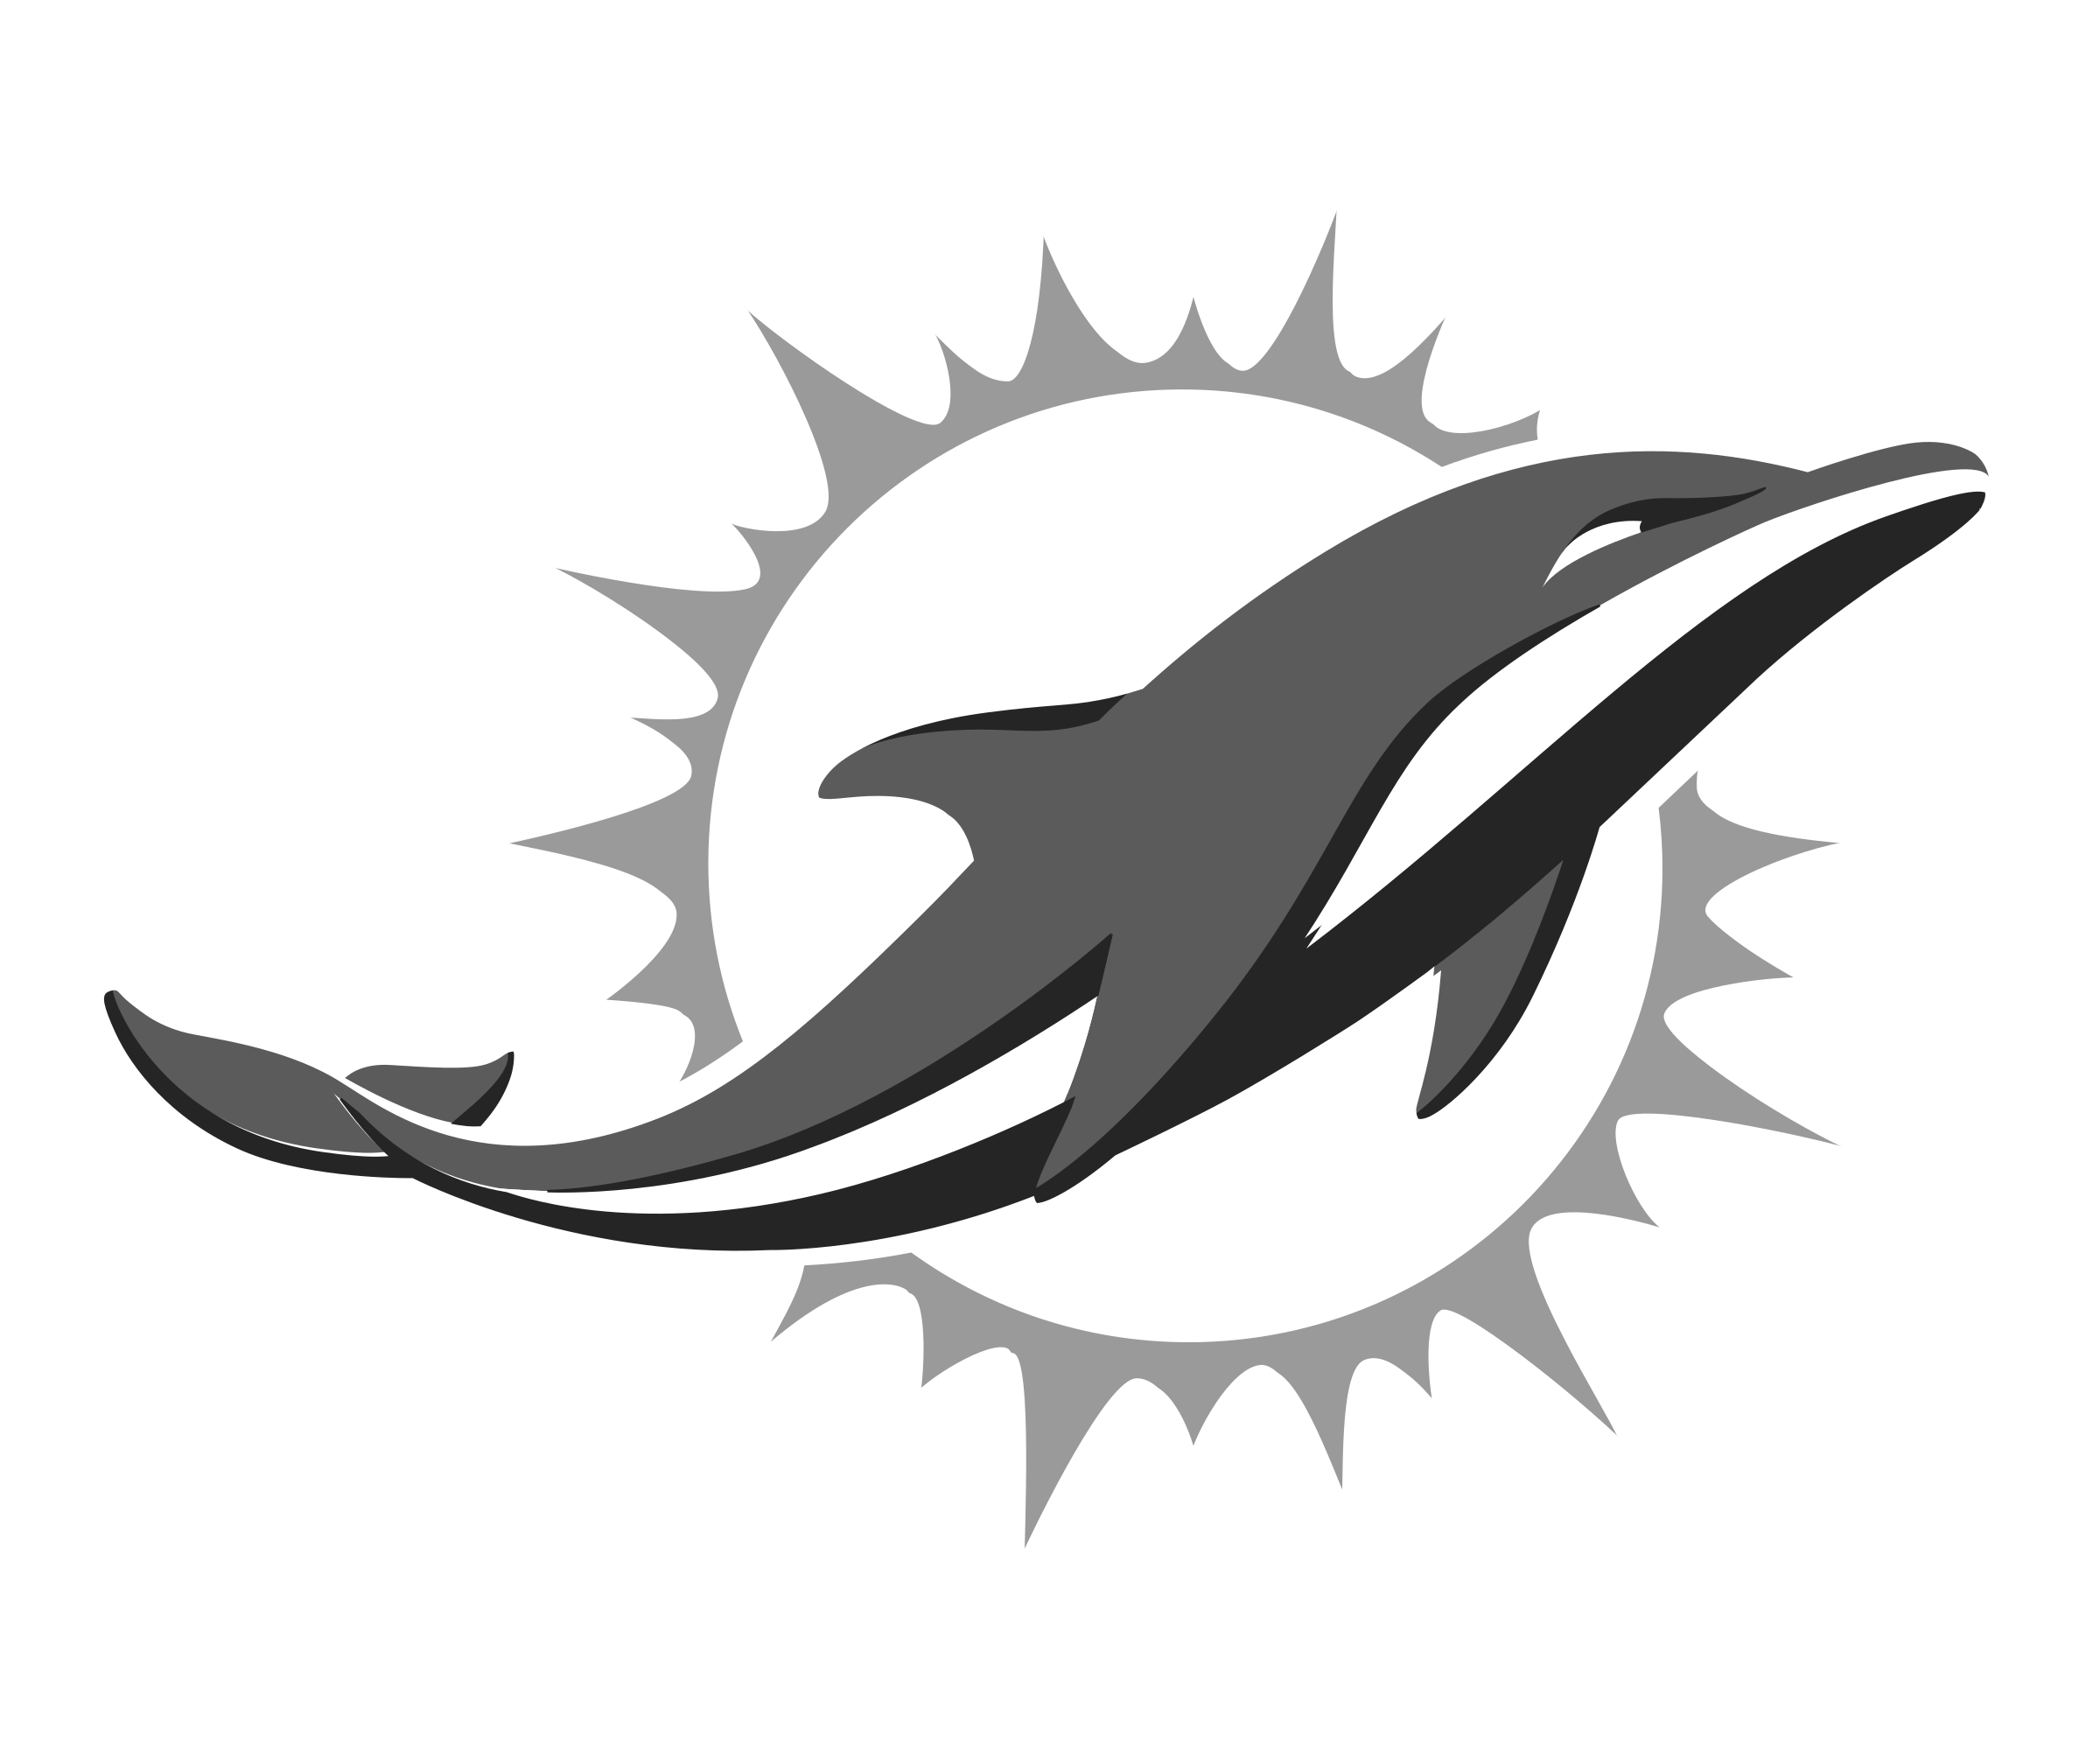 Clipart dolphin black and white. Miami dolphins logo png